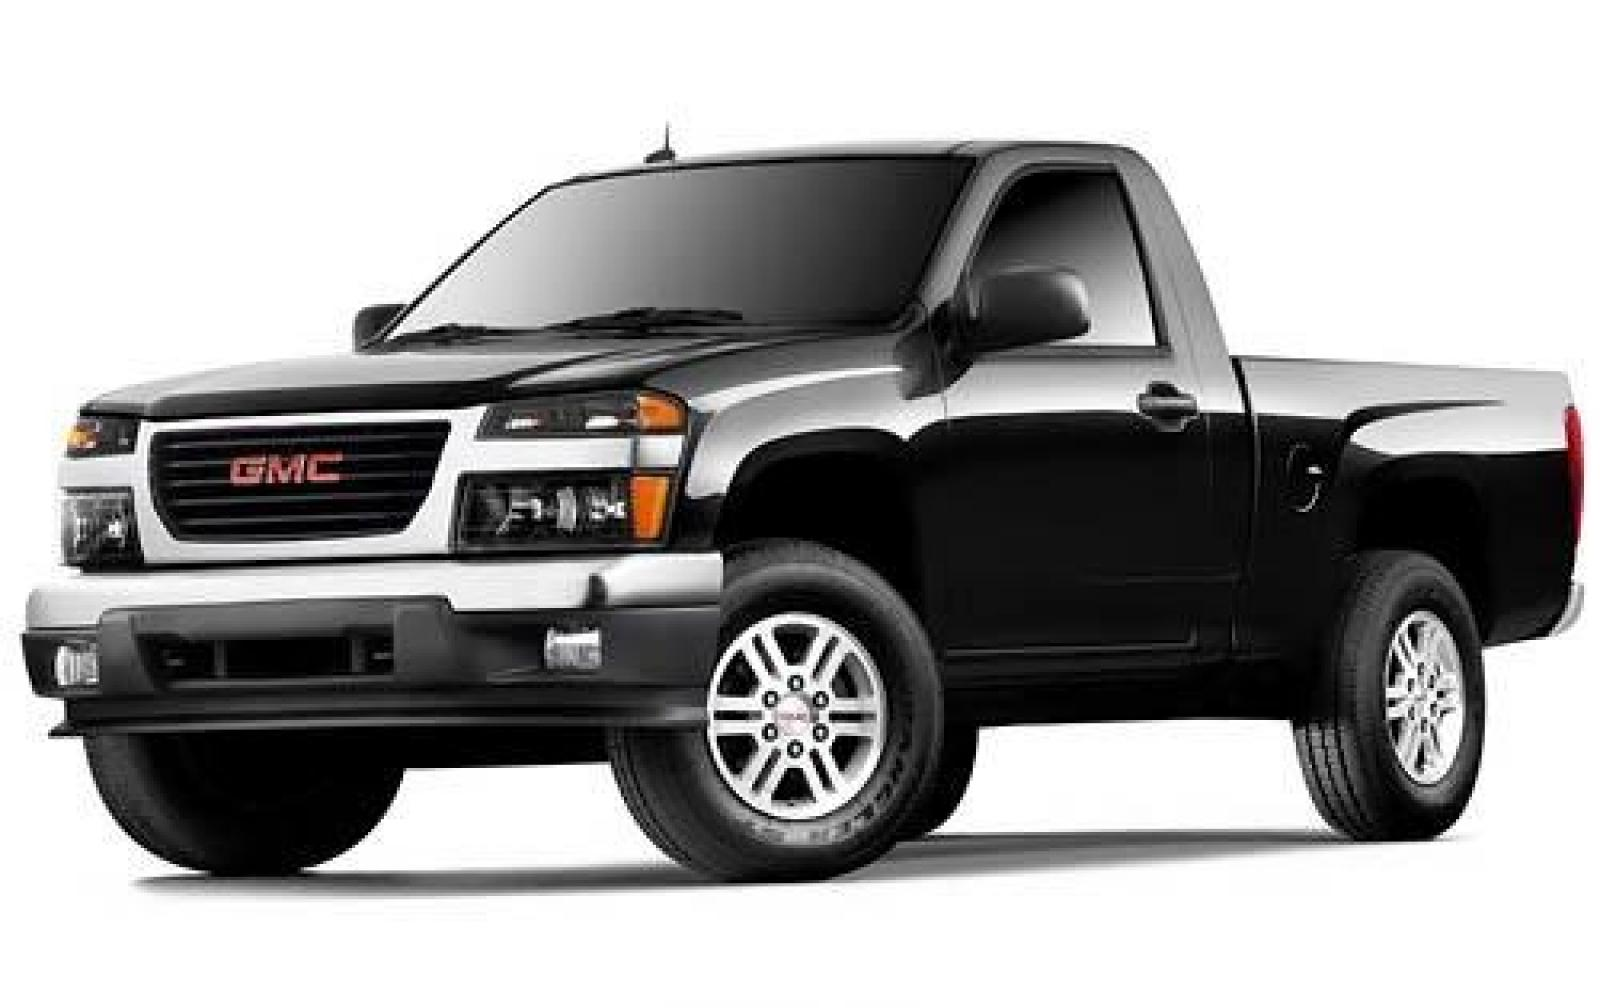 GMC CANYON [USA] Standard Cab Pickup (US)